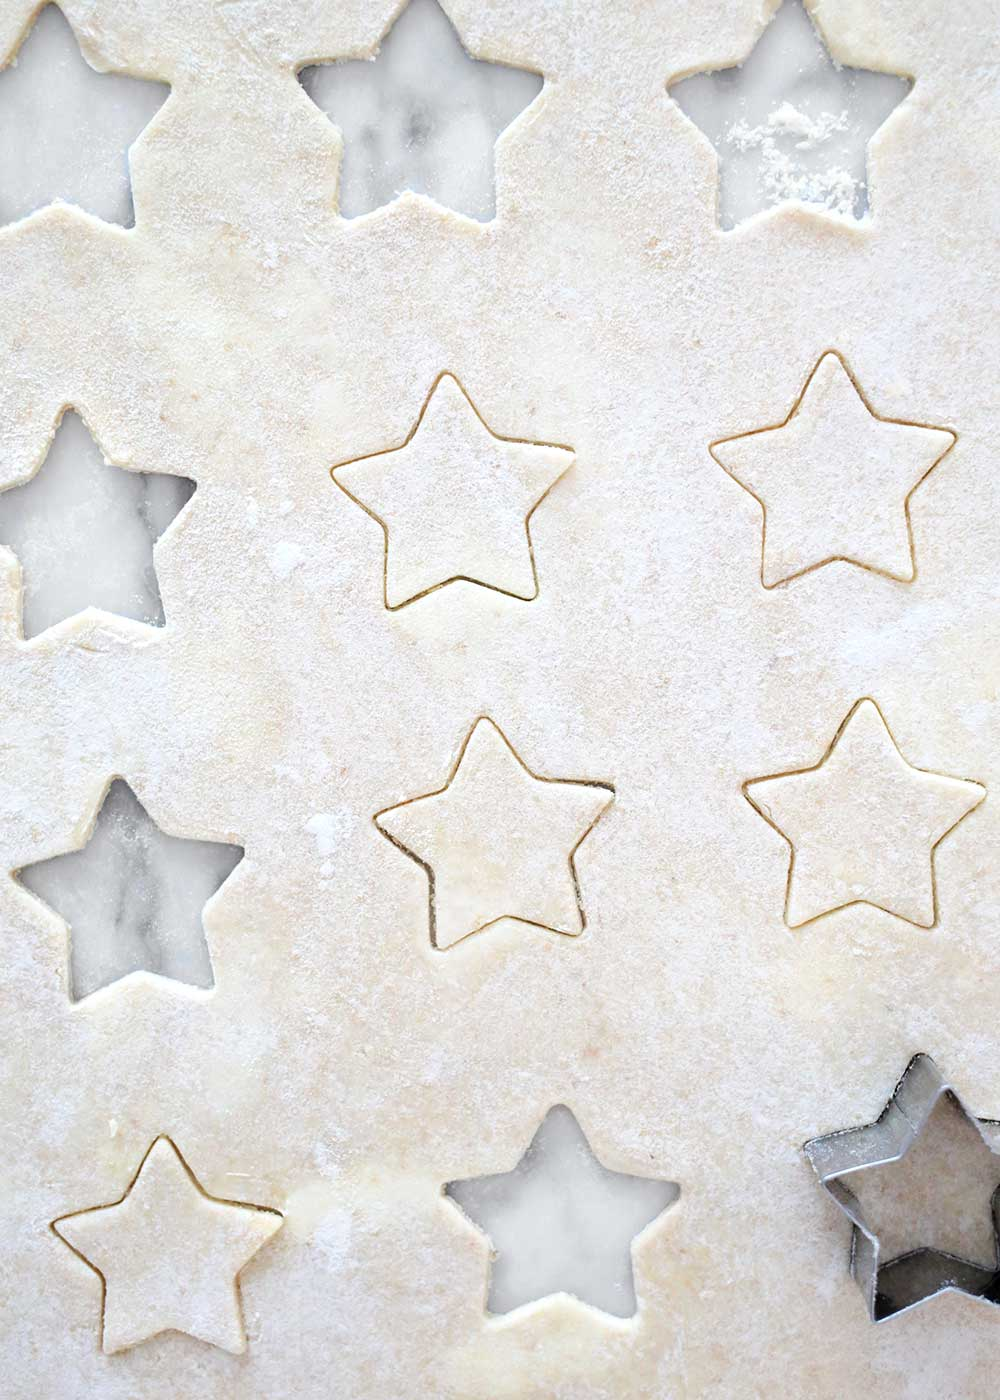 Pie Crust with stars from The Fauxmartha